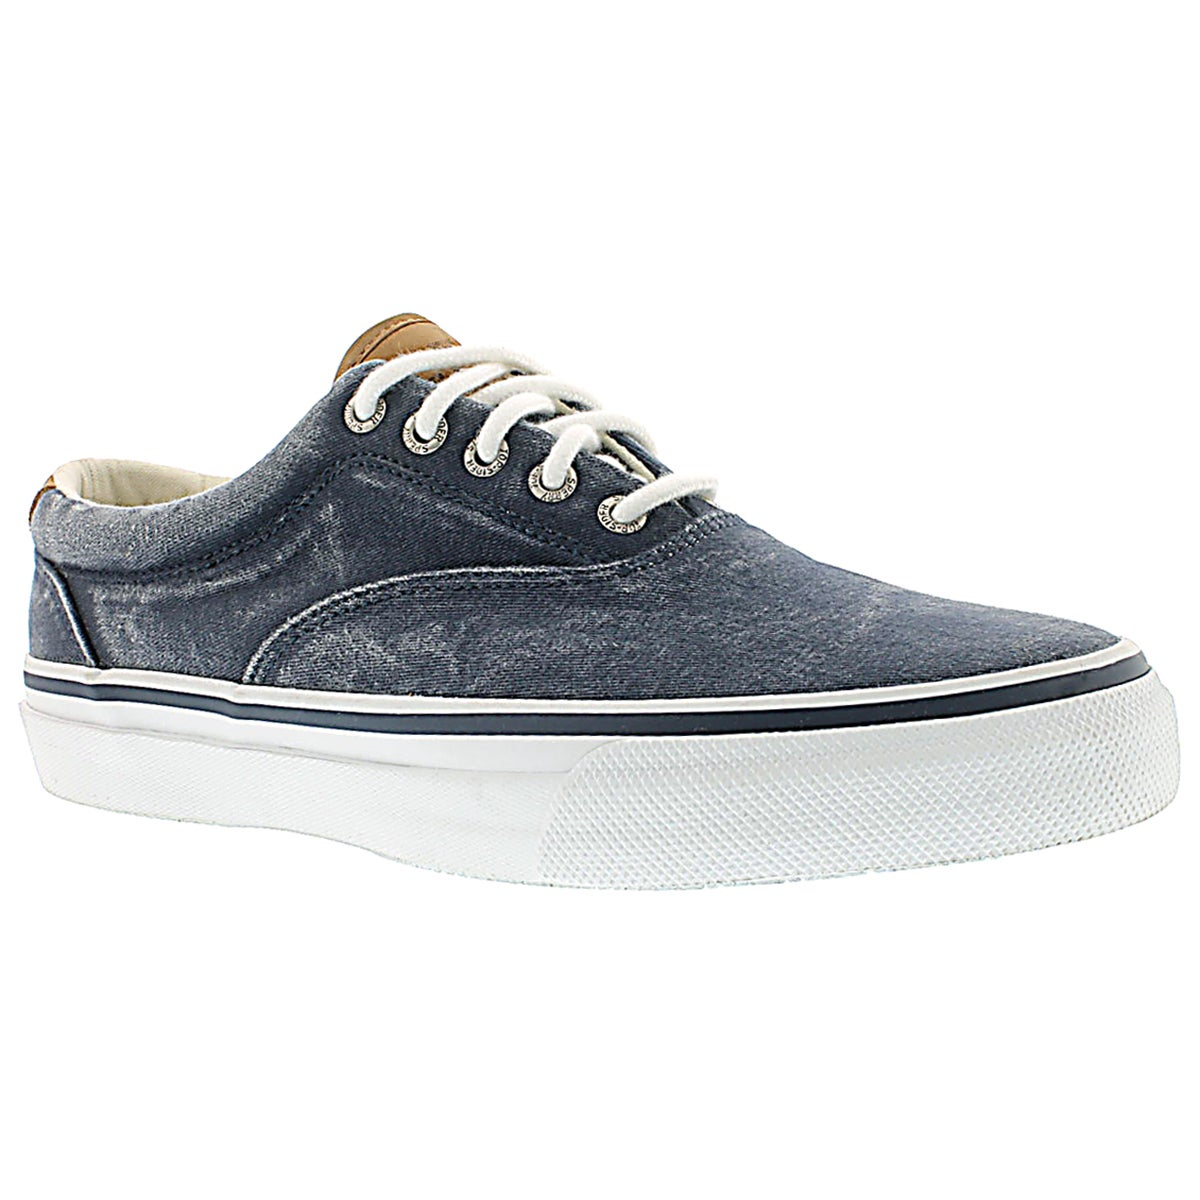 Men's STRIPER CVO SALT WASHED TWILL navy shoes